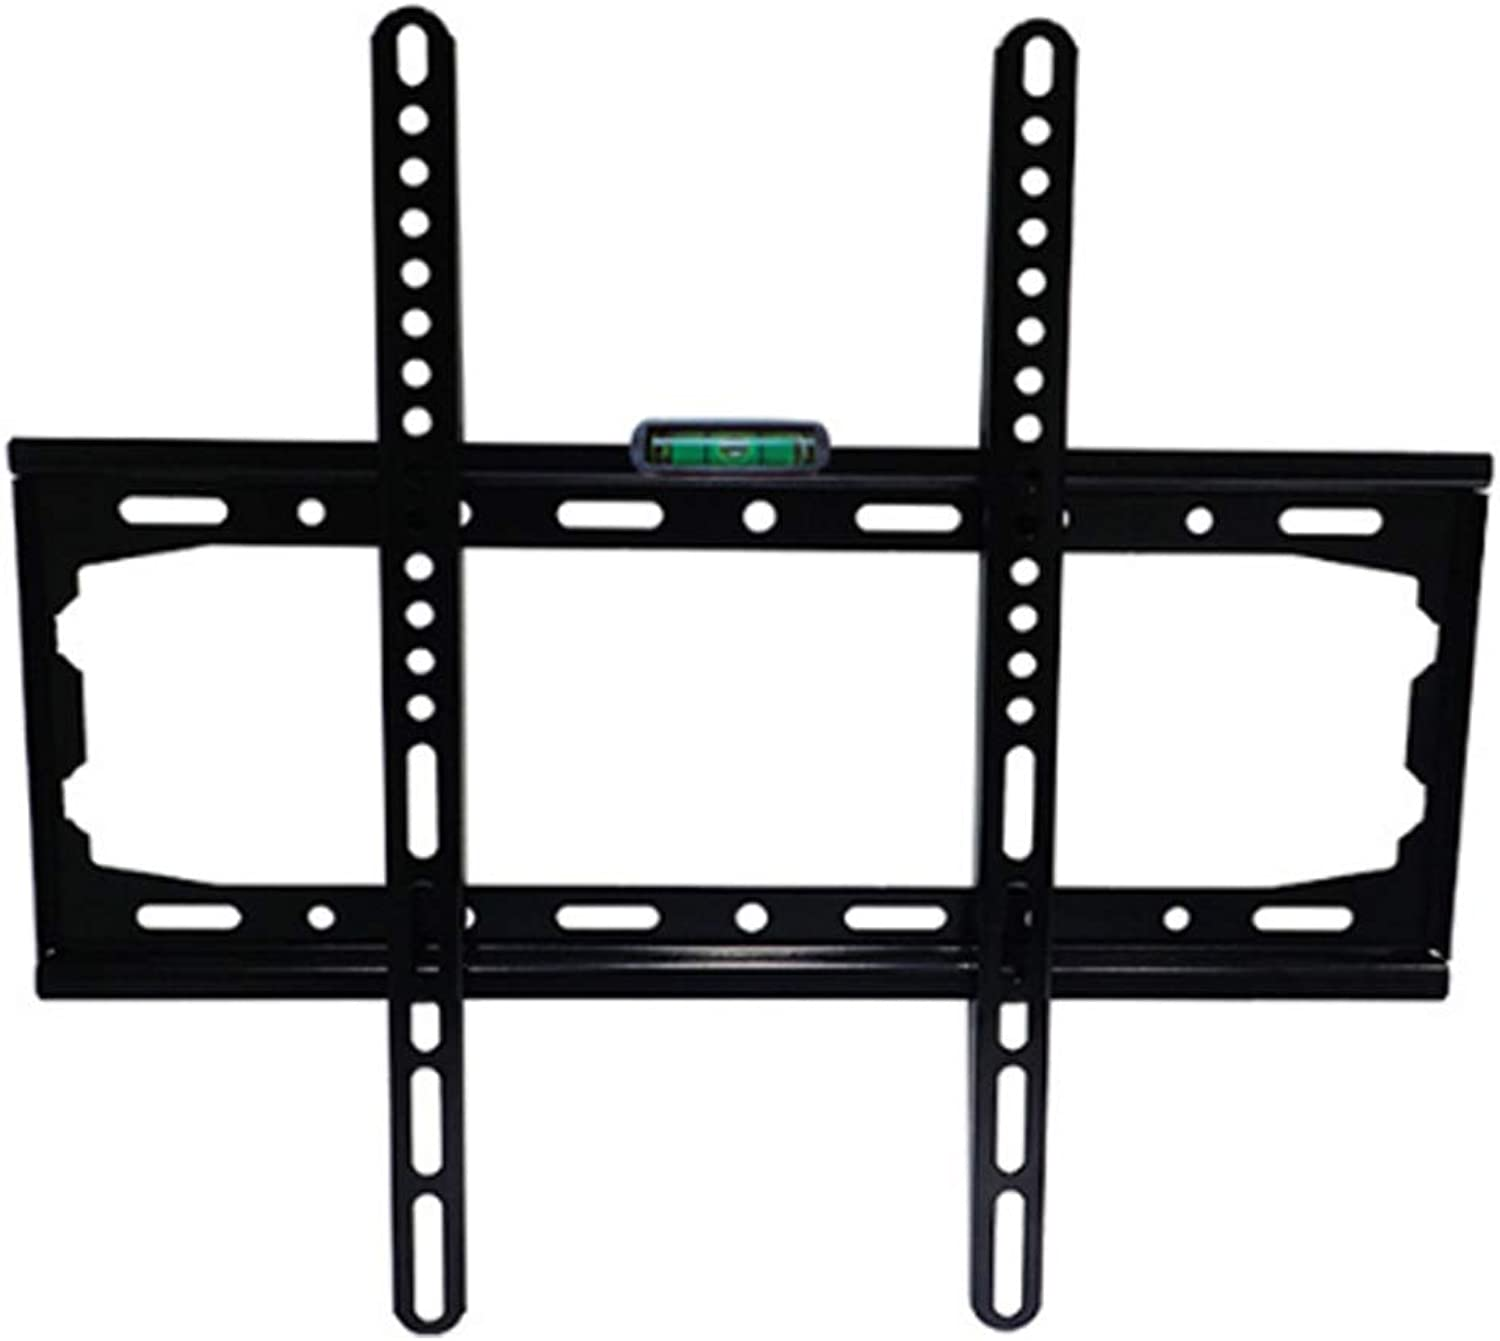 Integrated Fixed TV Wall Mount Bracket Fits Most 26  to 55  Screen Universal LED LCD TV Rack Contains a Level Device Super Strong 45kg Weight Capacity